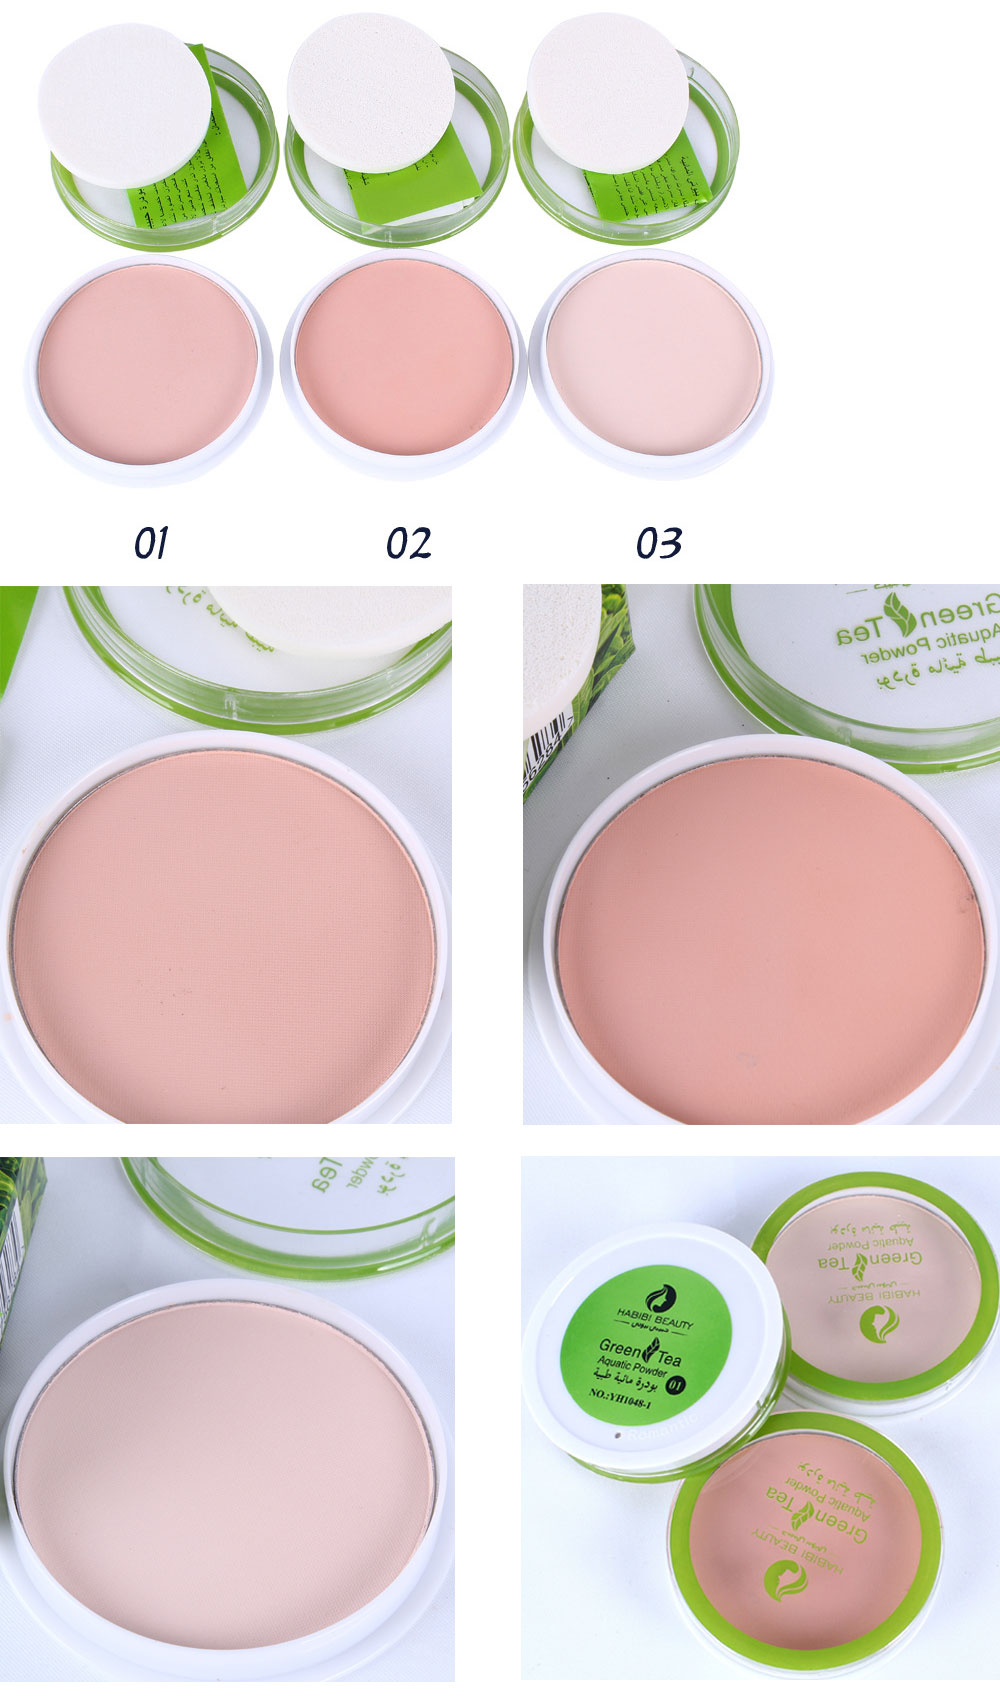 New Good Effect Powder for Cover the Spot on the Face